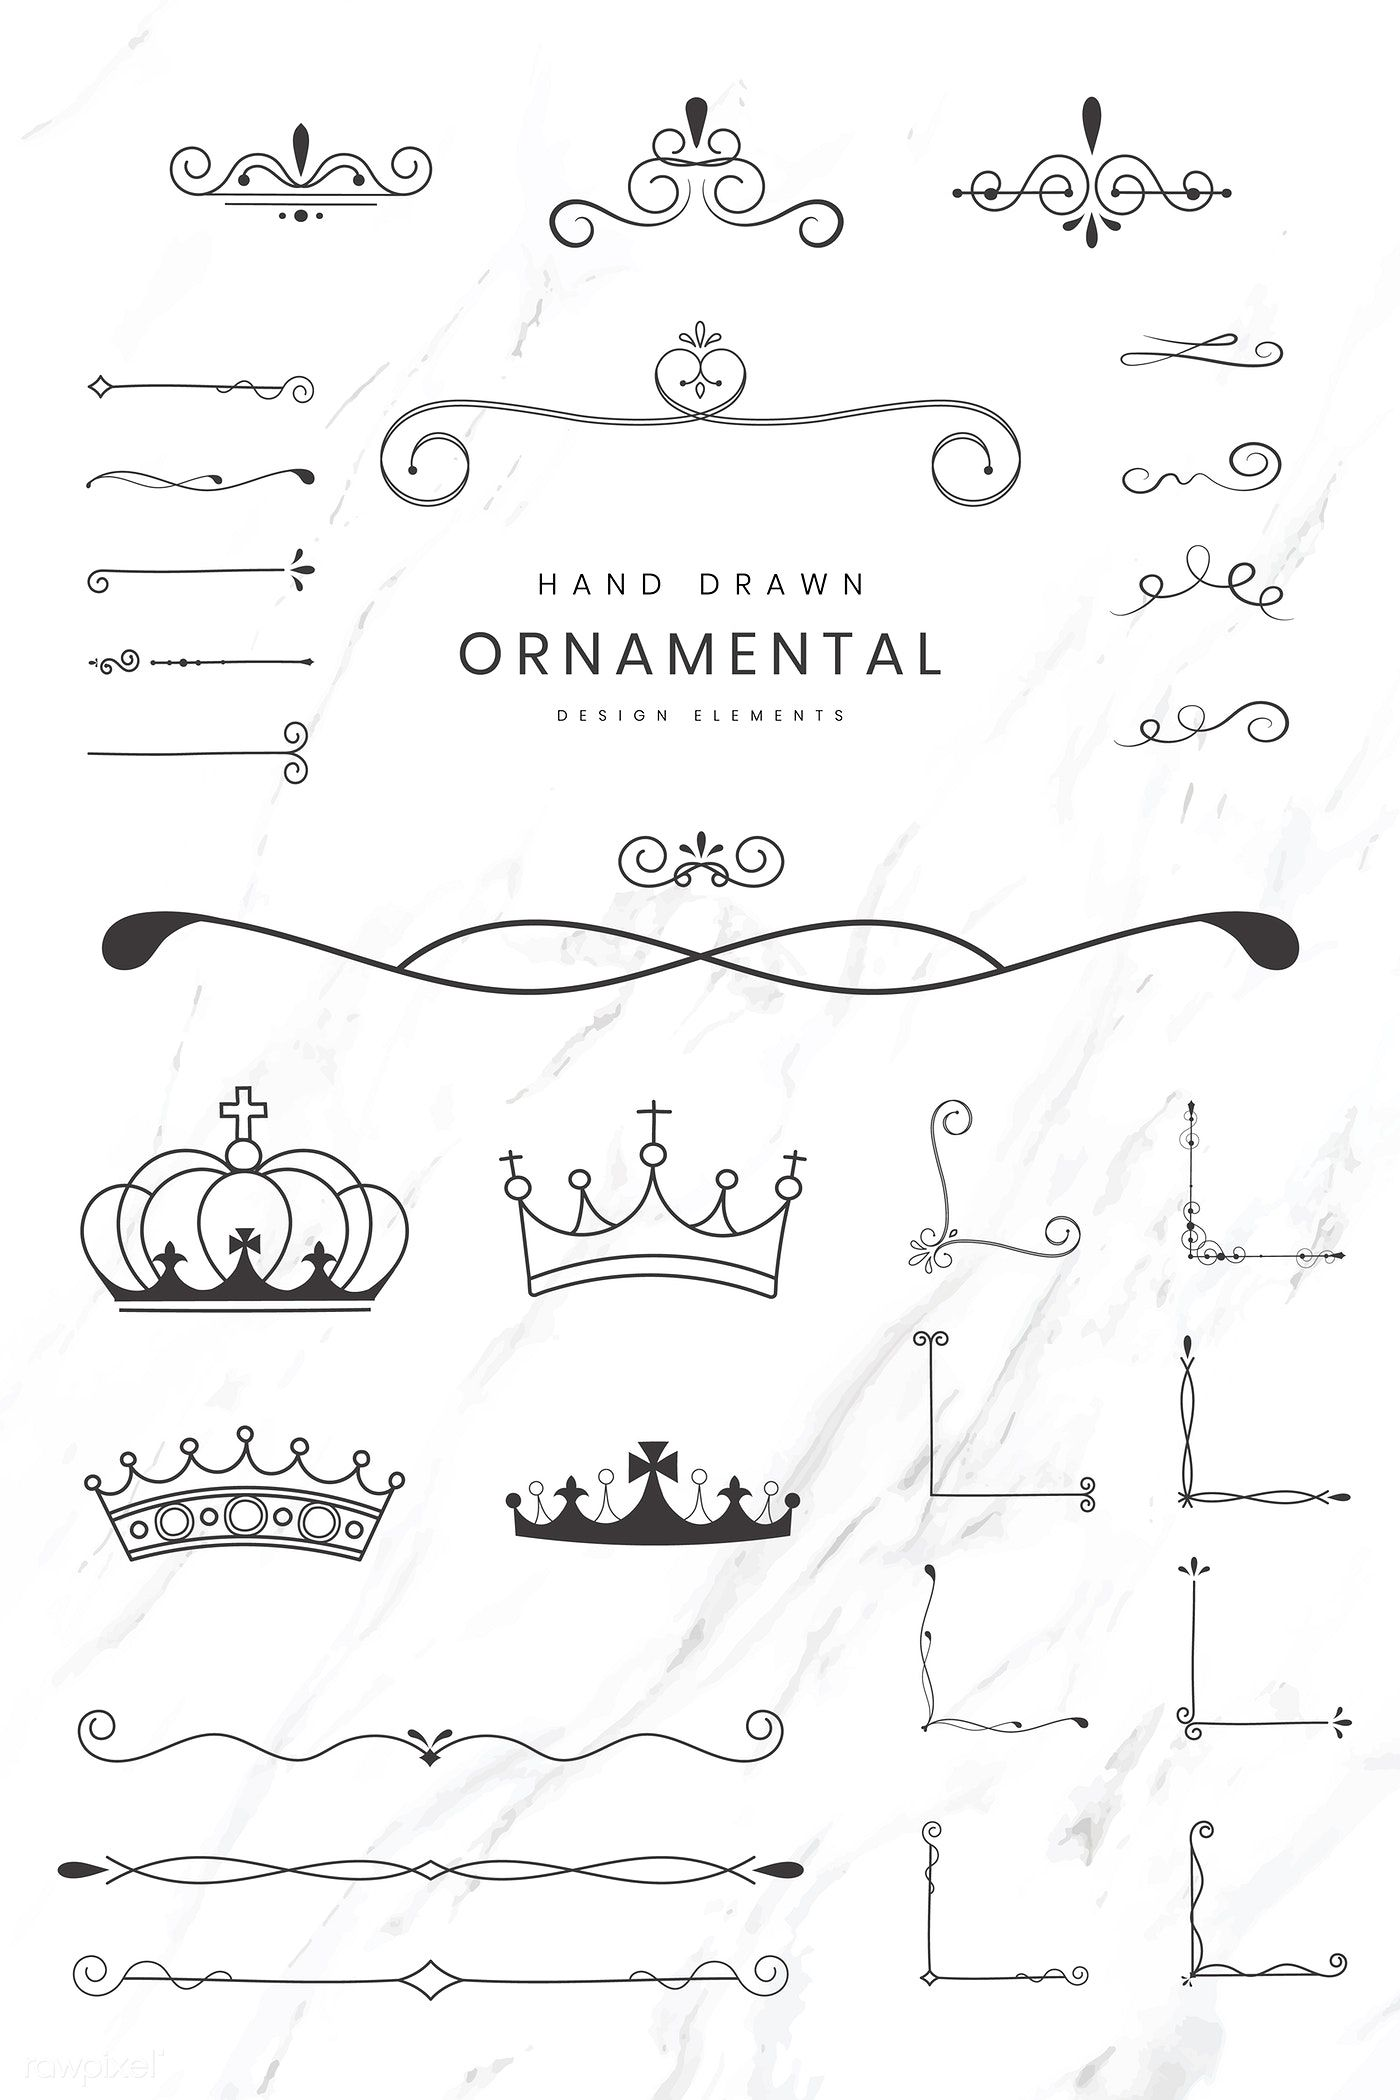 Download Premium Vector Of Hand Drawn Ornamental Design Elements Vector How To Draw Hands Design Elements Vector Free